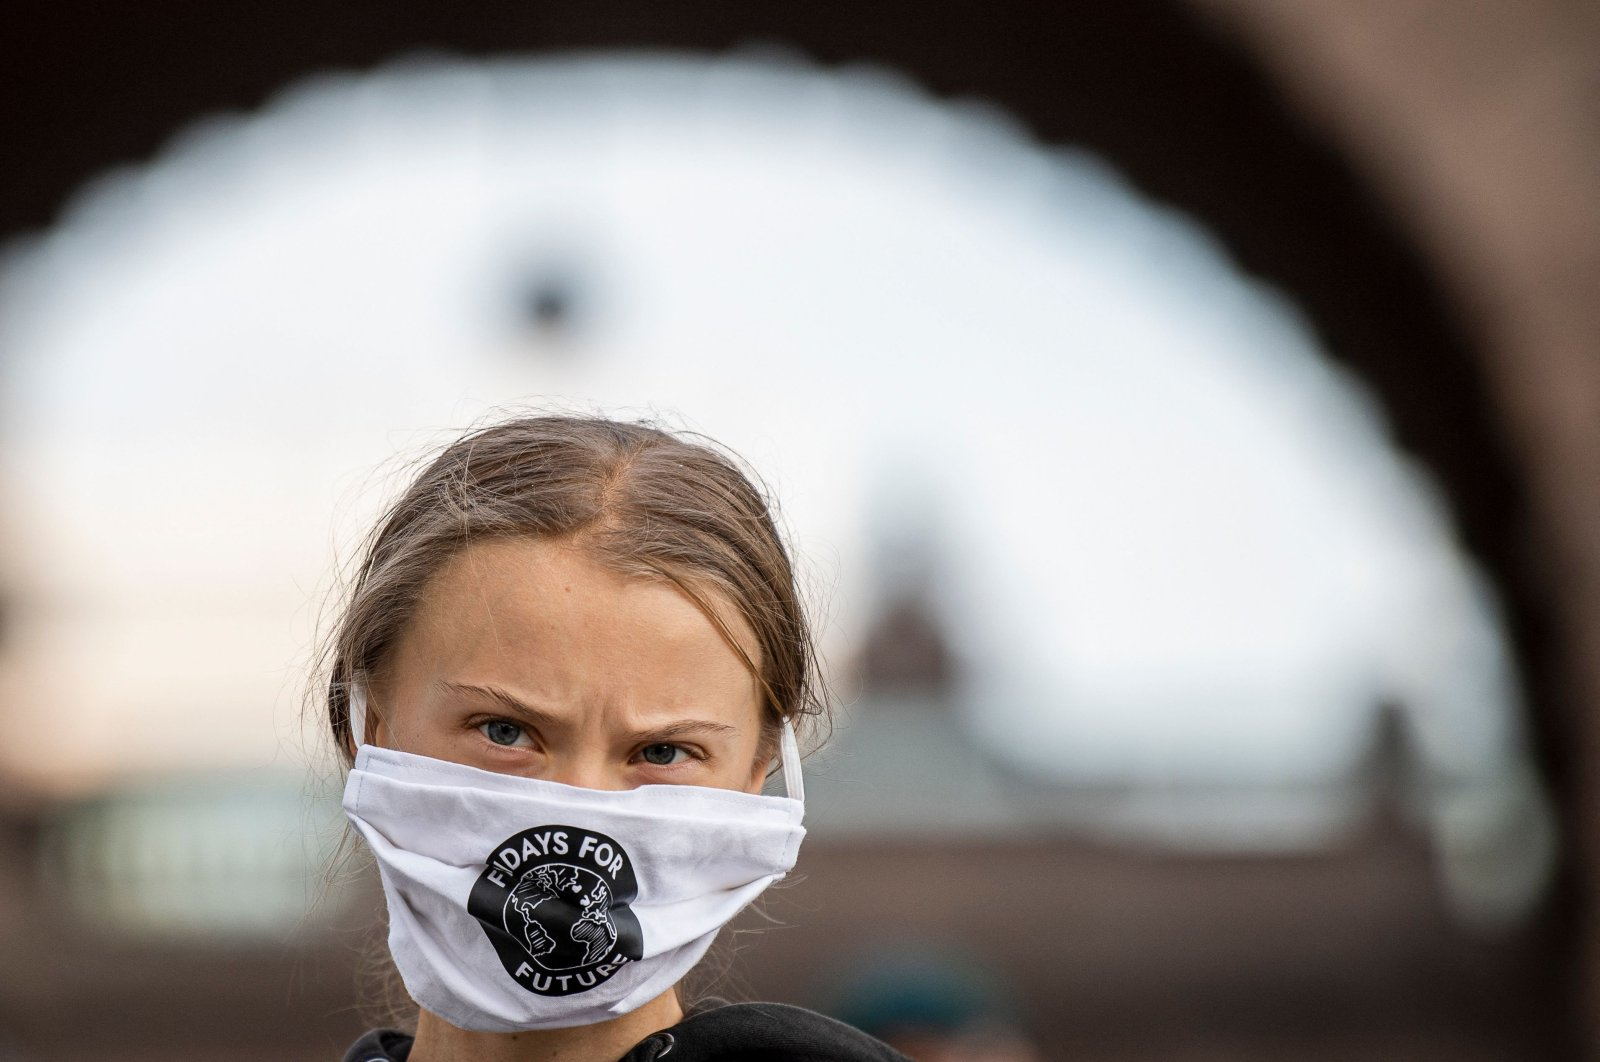 Swedish climate activist Greta Thunberg takes part in a Fridays For Future protest in front of the Swedish Parliament (Riksdagen) in Stockholm, Sweden, Sept. 25, 2020. (AFP Photo)